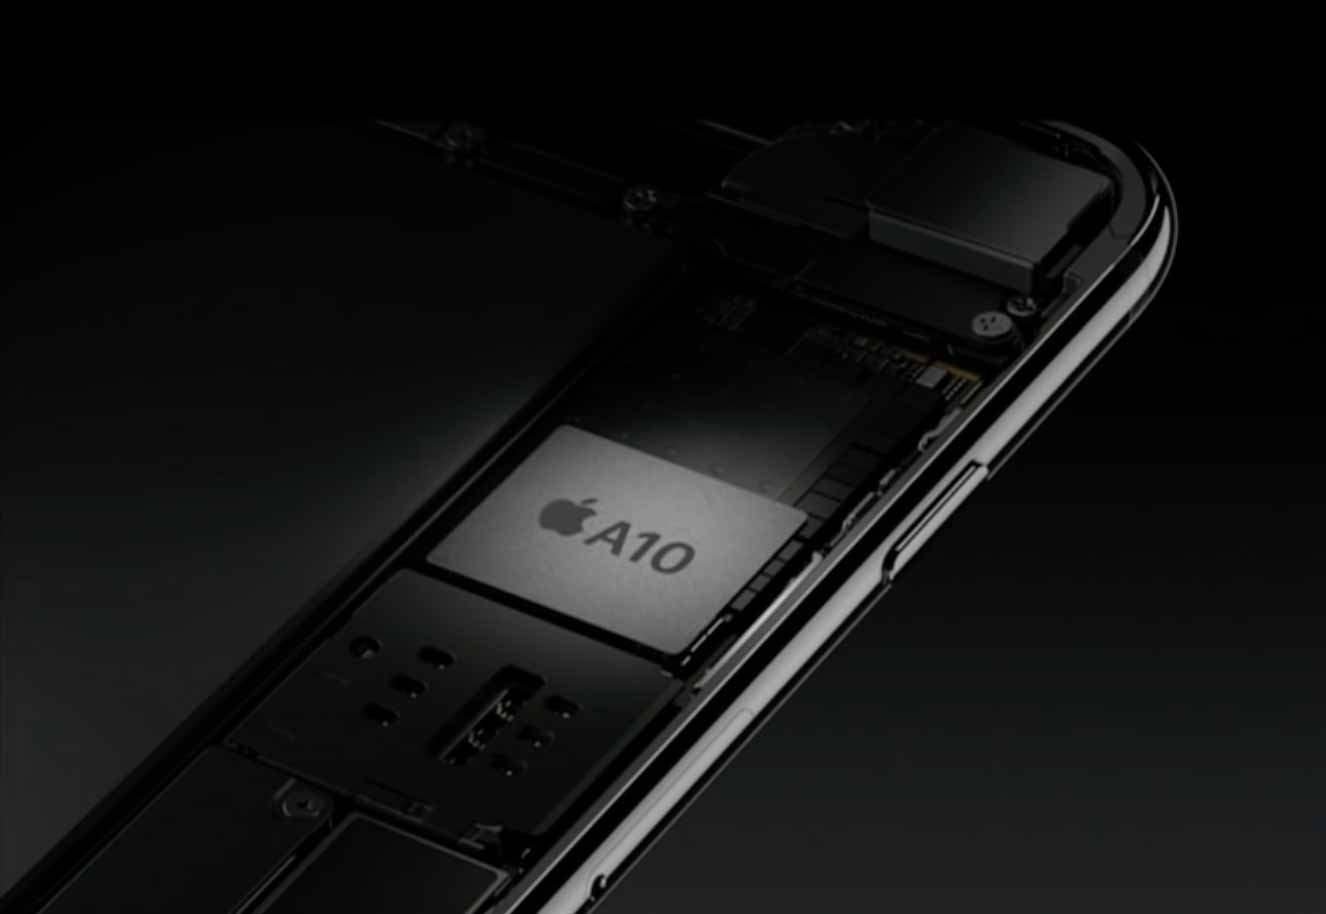 「iPhone 7」のRAMは2GB、「iPhone 7 Plus」は3GBに